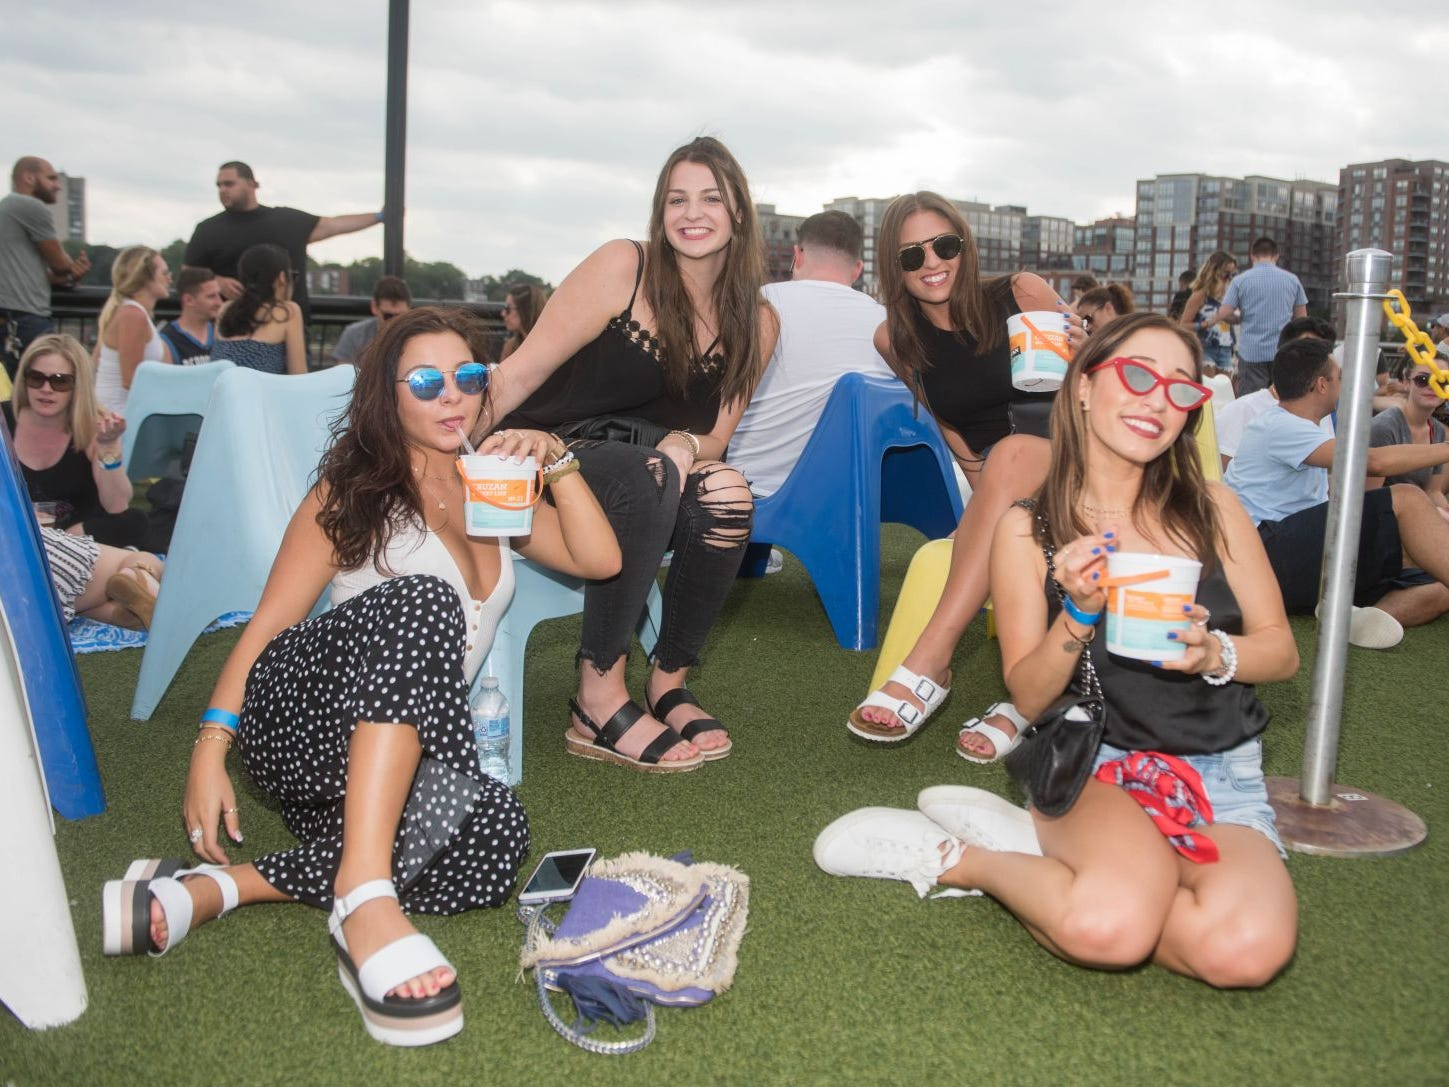 Ashley, Nicolette, Melissa and Melanie. We dropped by Pier 13 in Hoboken to check out the end of summer fun in the area. 08/26/2018